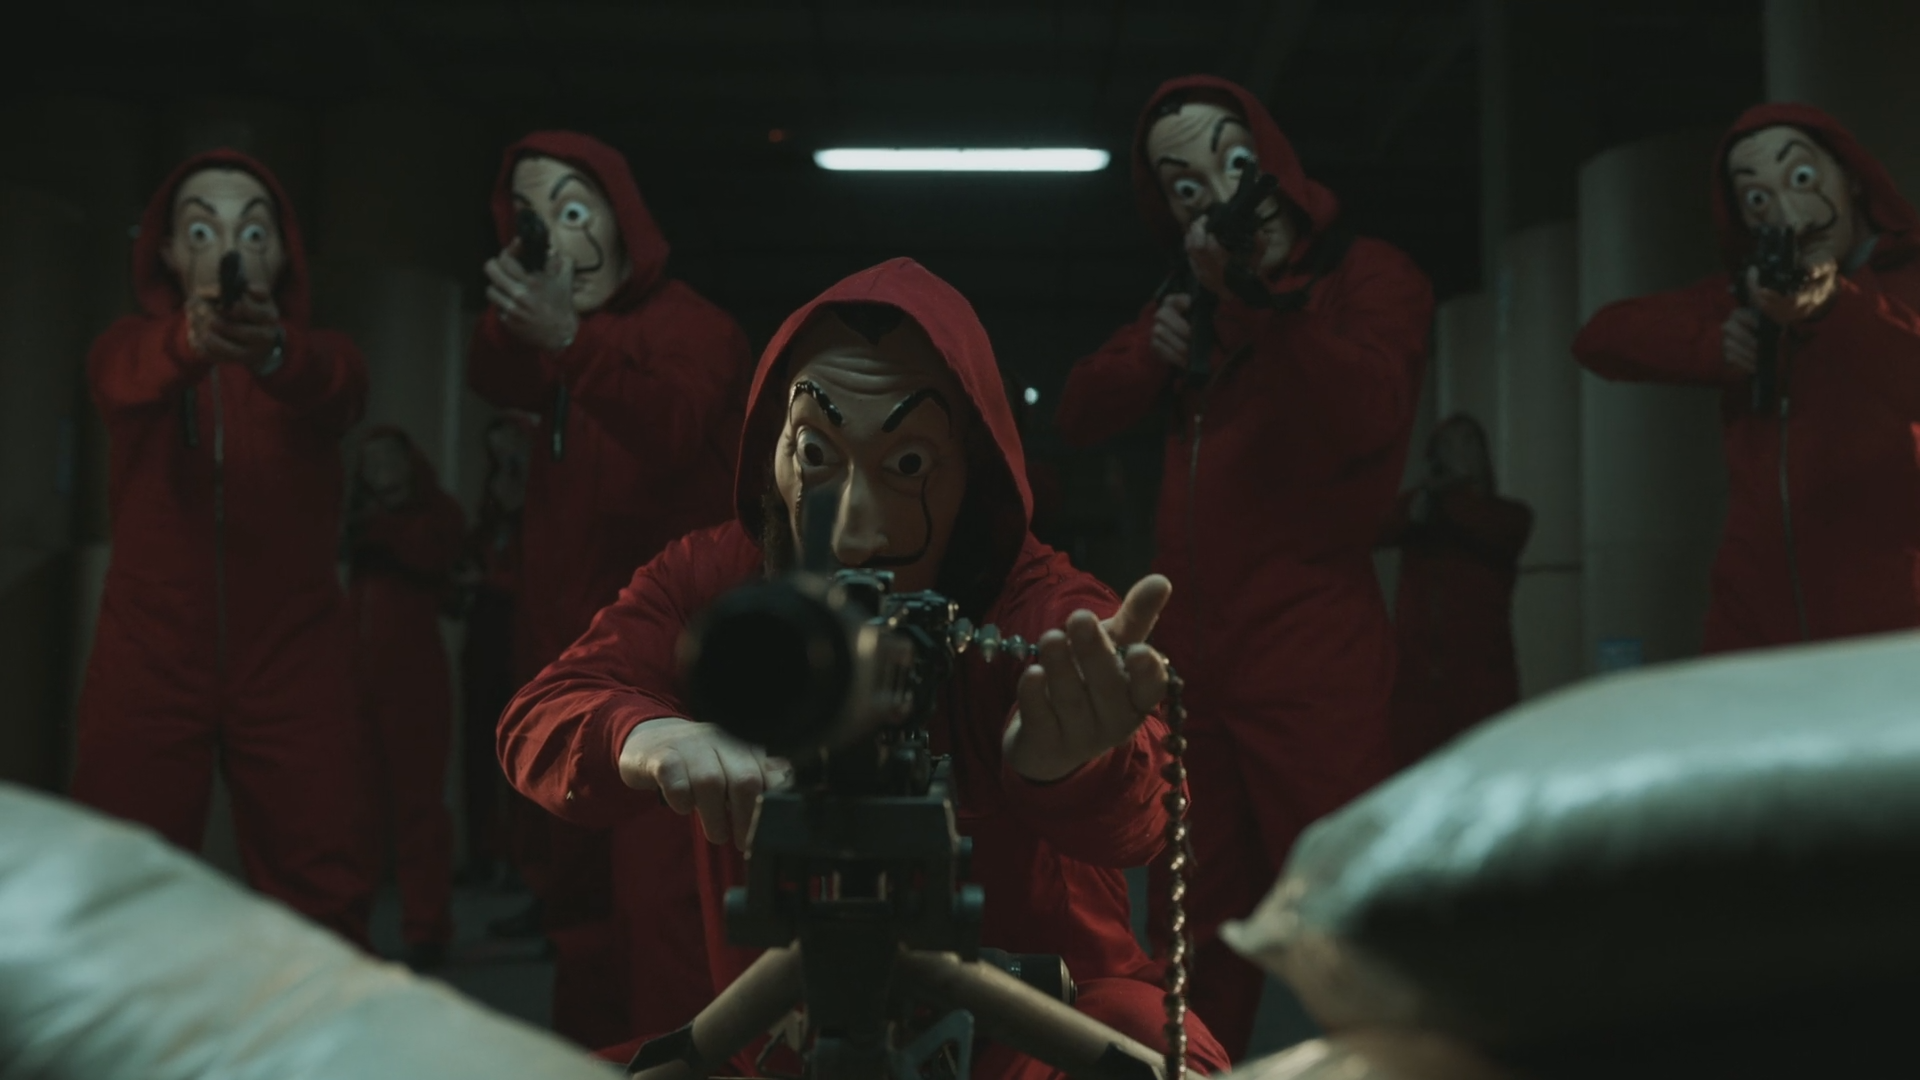 La casa de papel Escape Room